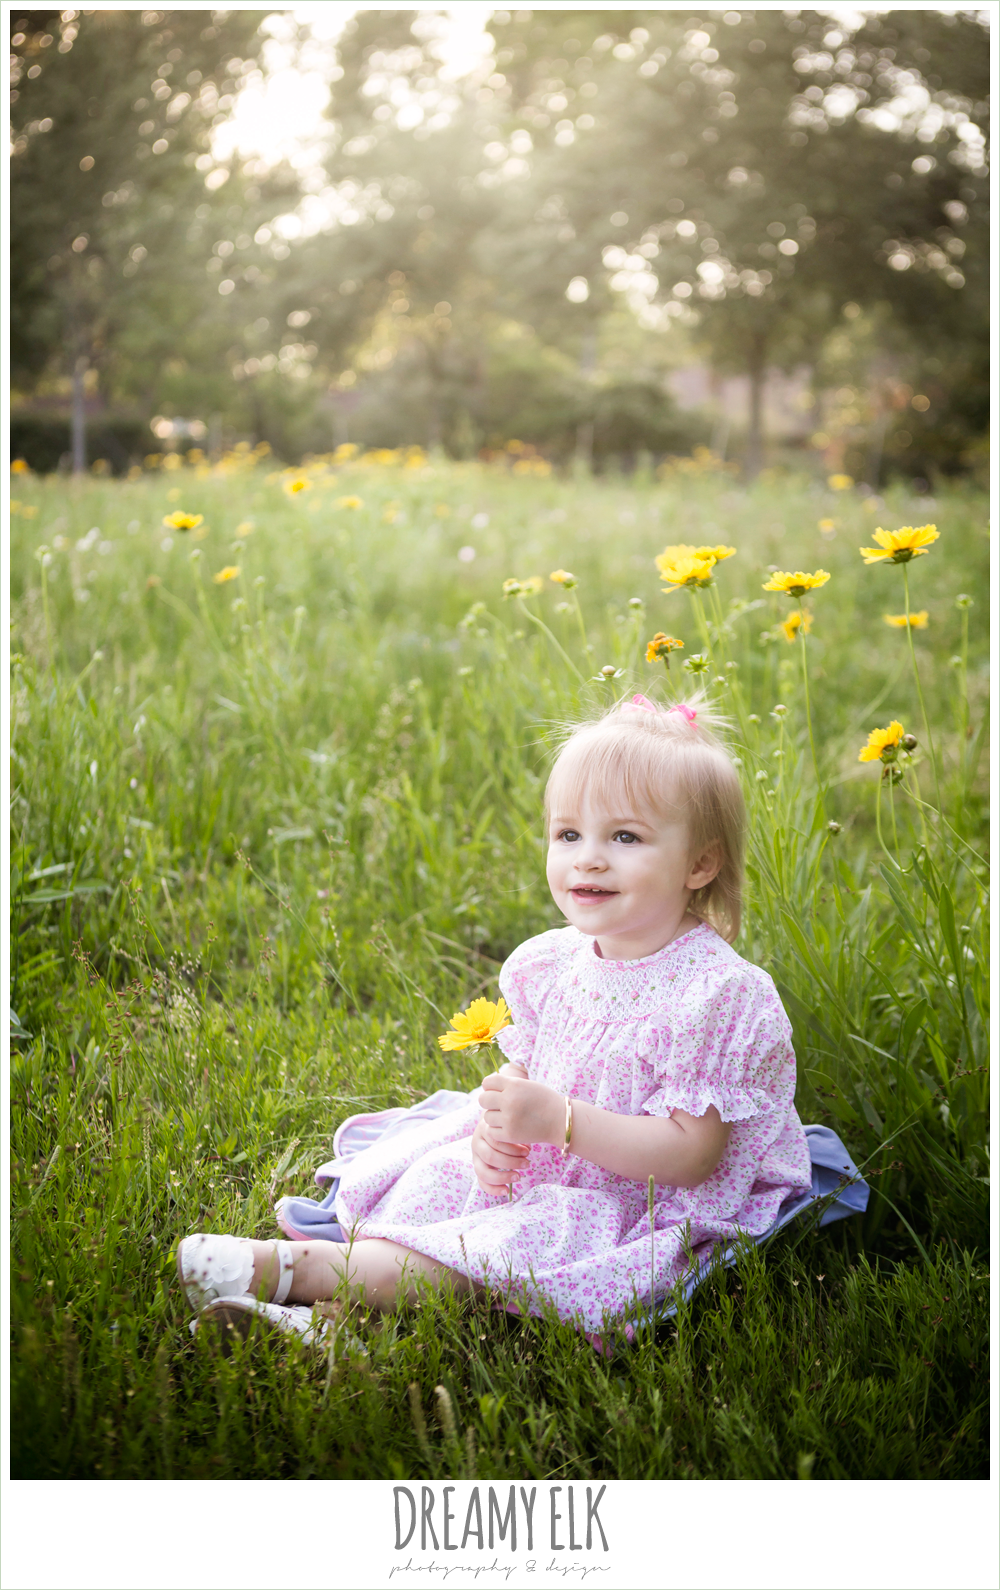 18 month old photo, photo of girl toddler outside in field of wildflowers